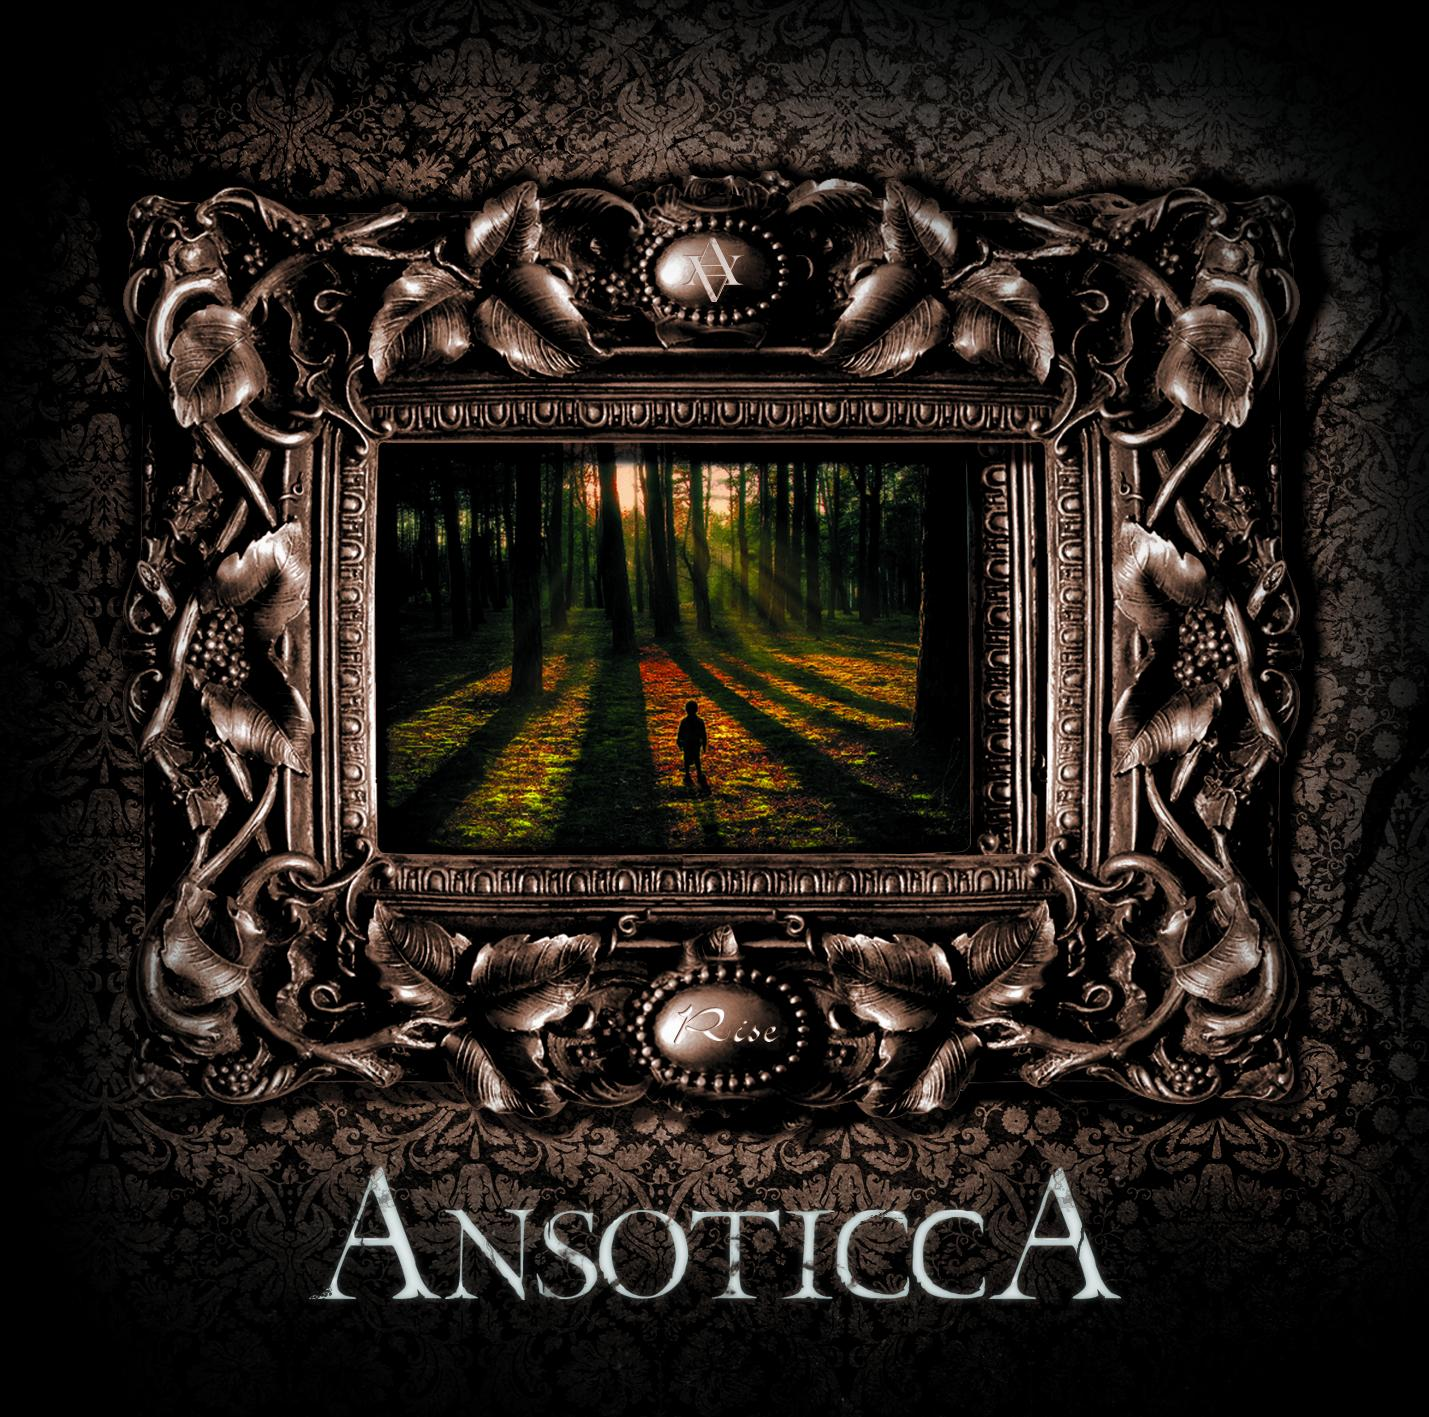 AnsoticcA cover art